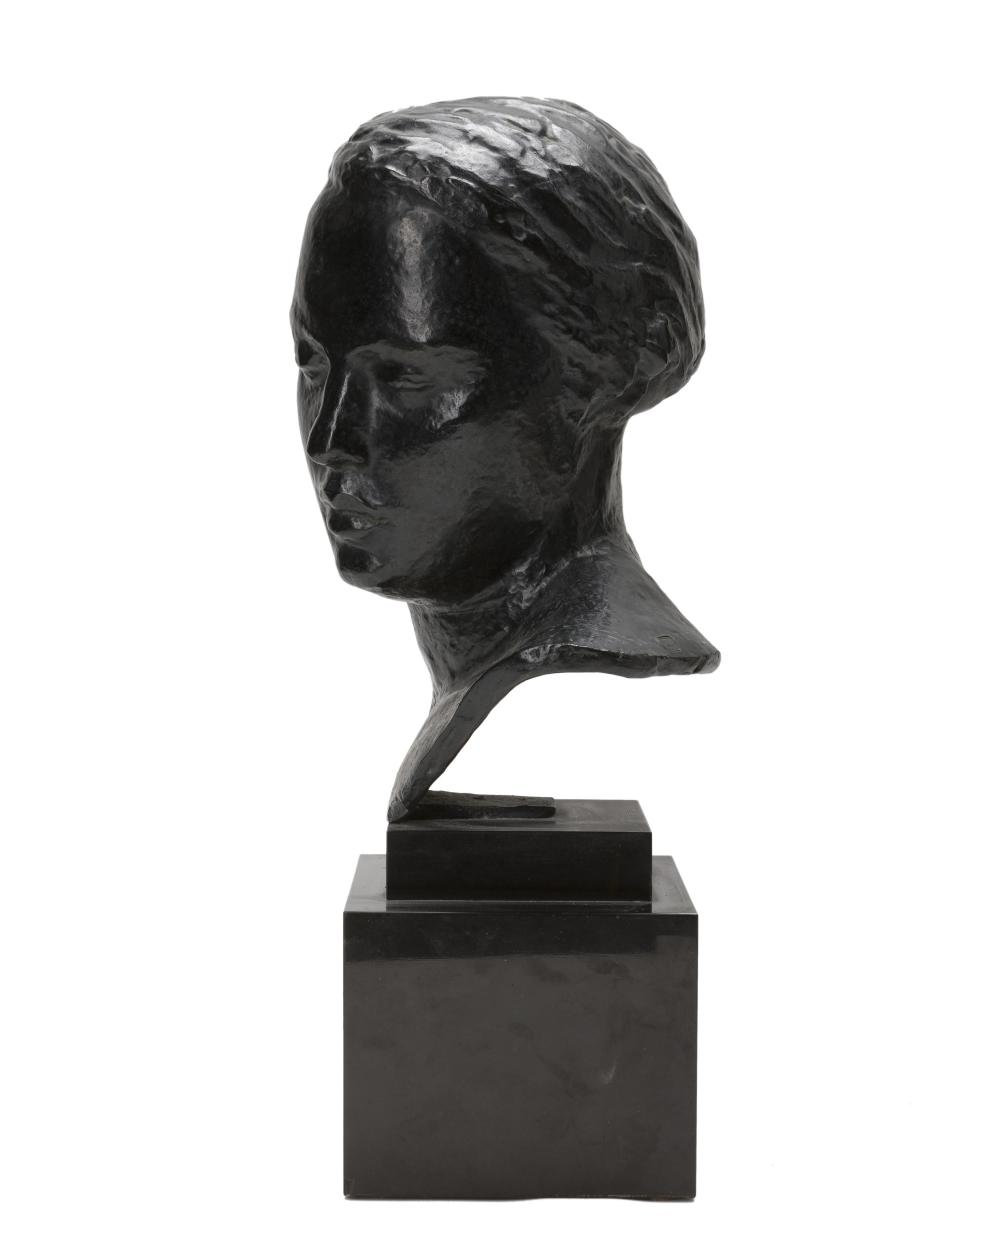 Robert Wlerick, (1882-1944 French), Bust of a woman, Patinated cast bronze on marble plinth, 14.25